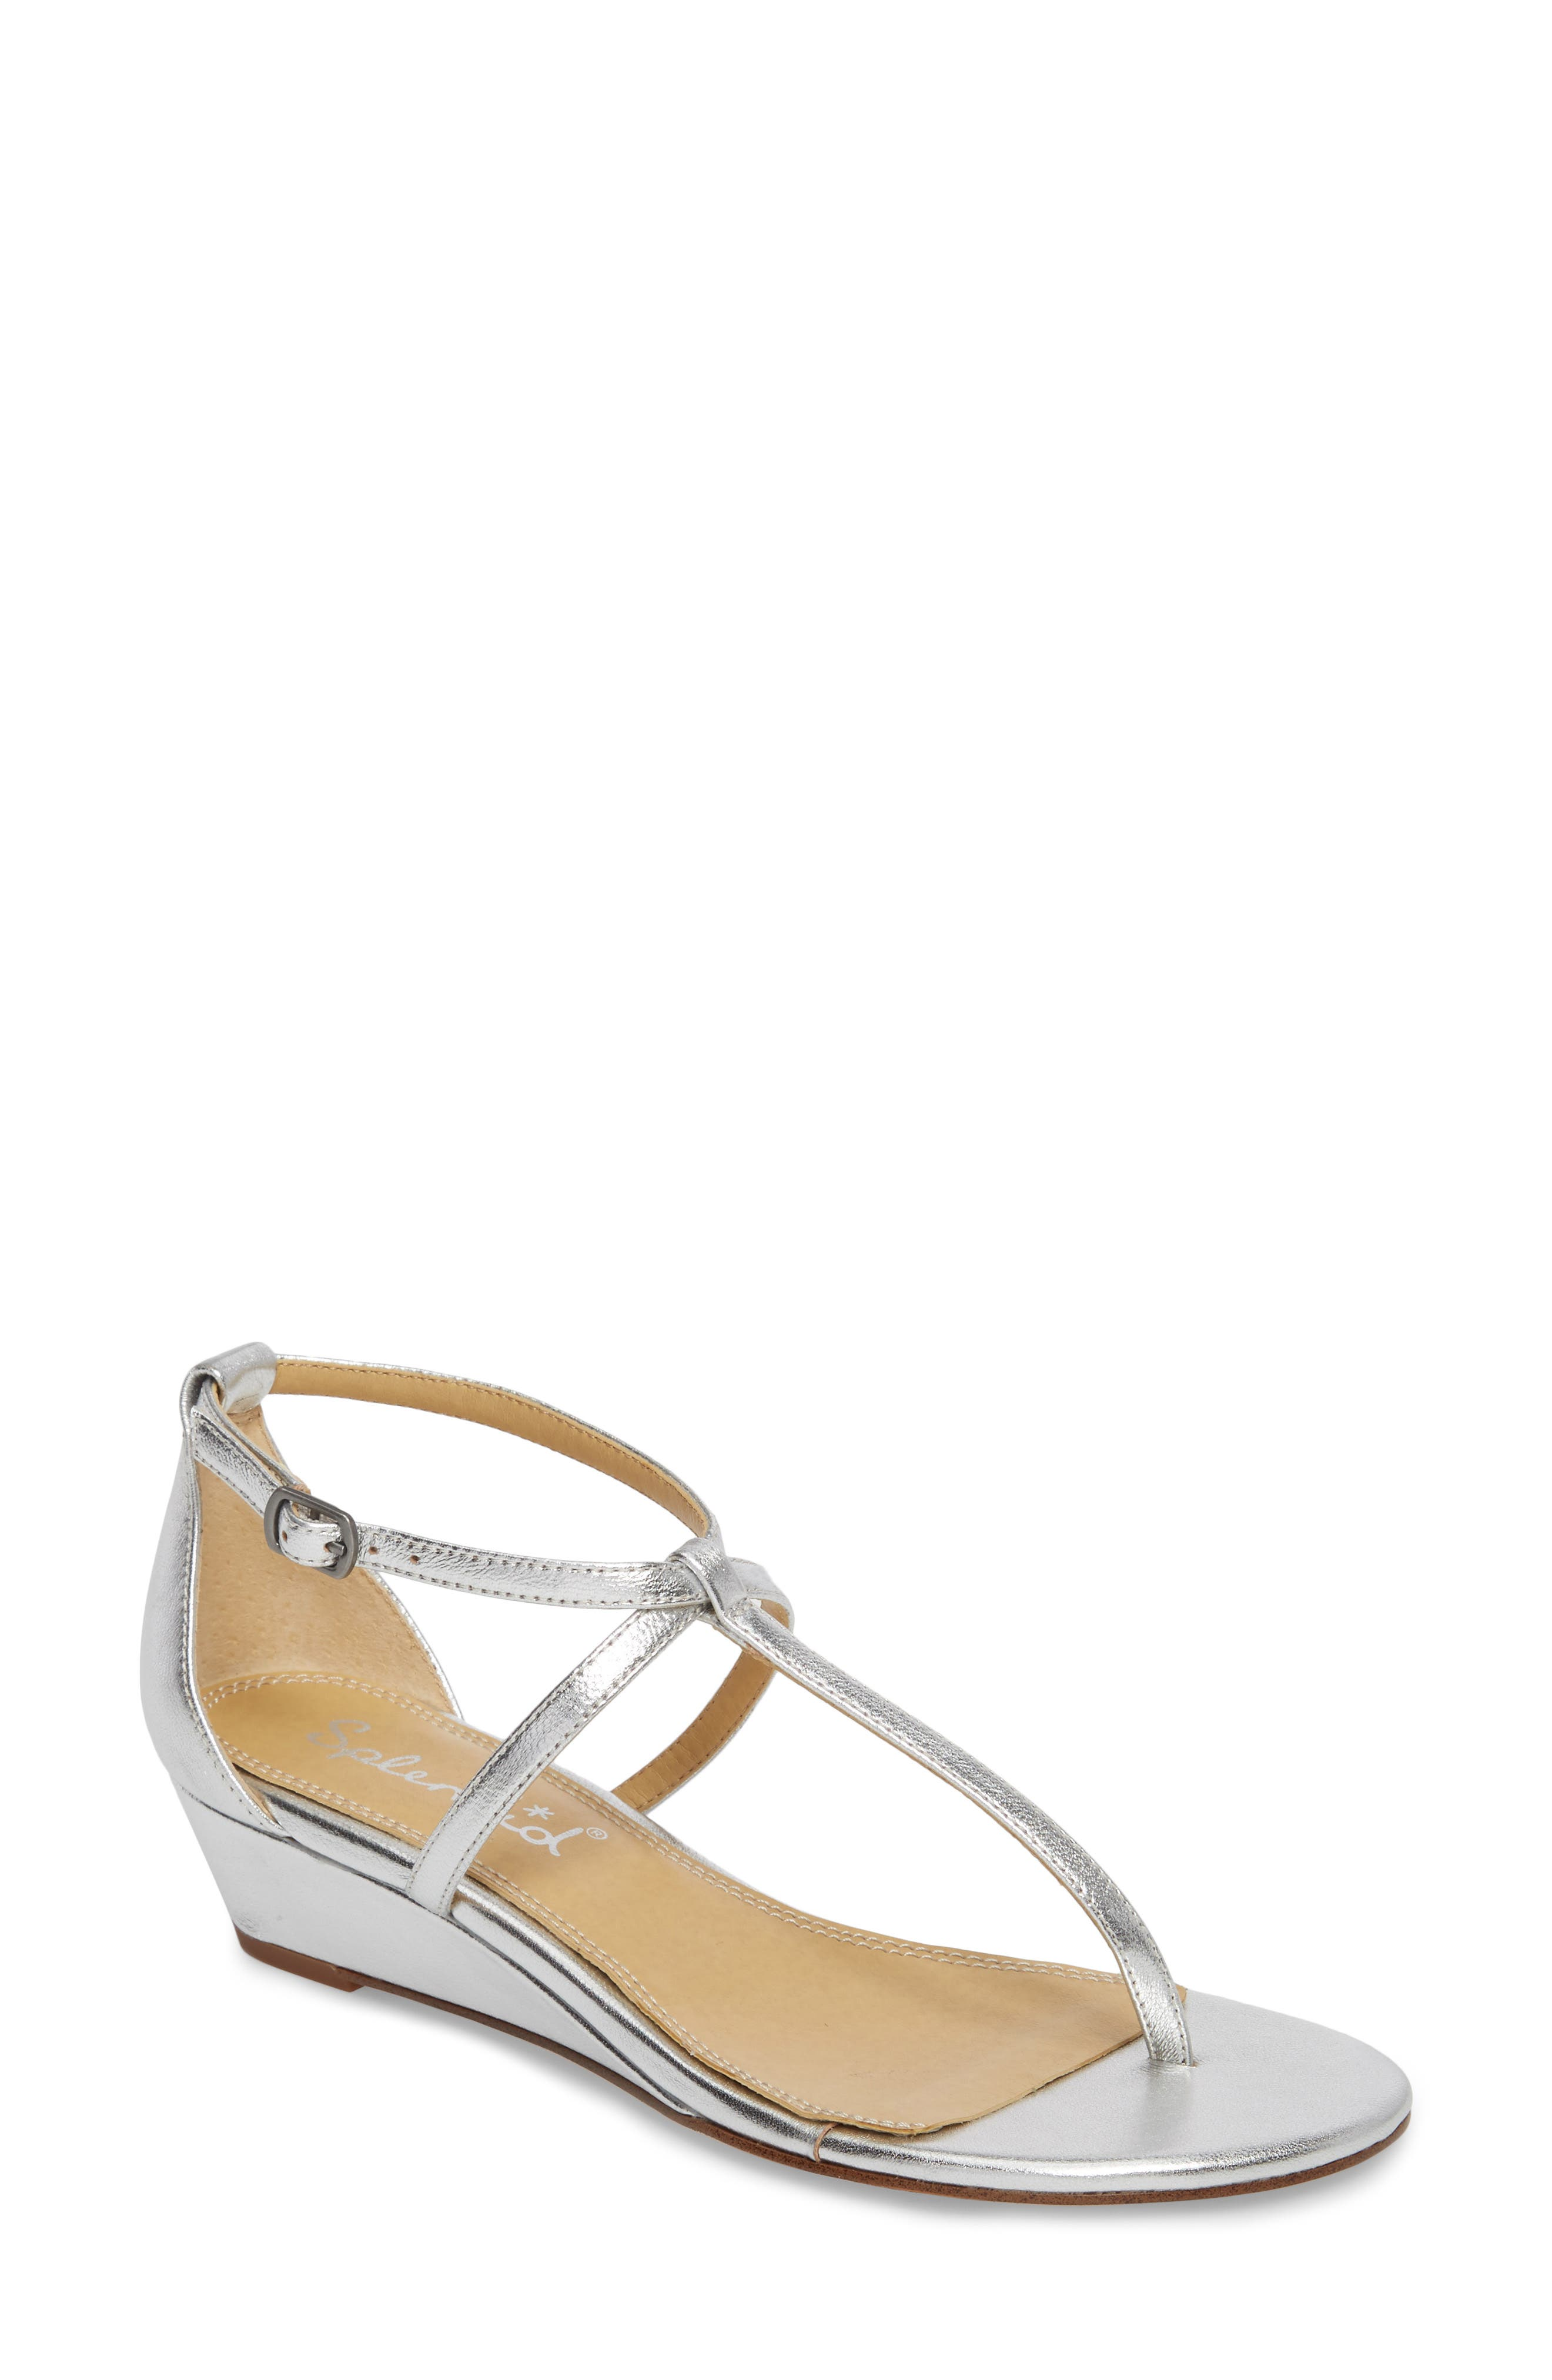 Bryce T-Strap Wedge Sandal,                         Main,                         color, Silver Metallic Leather